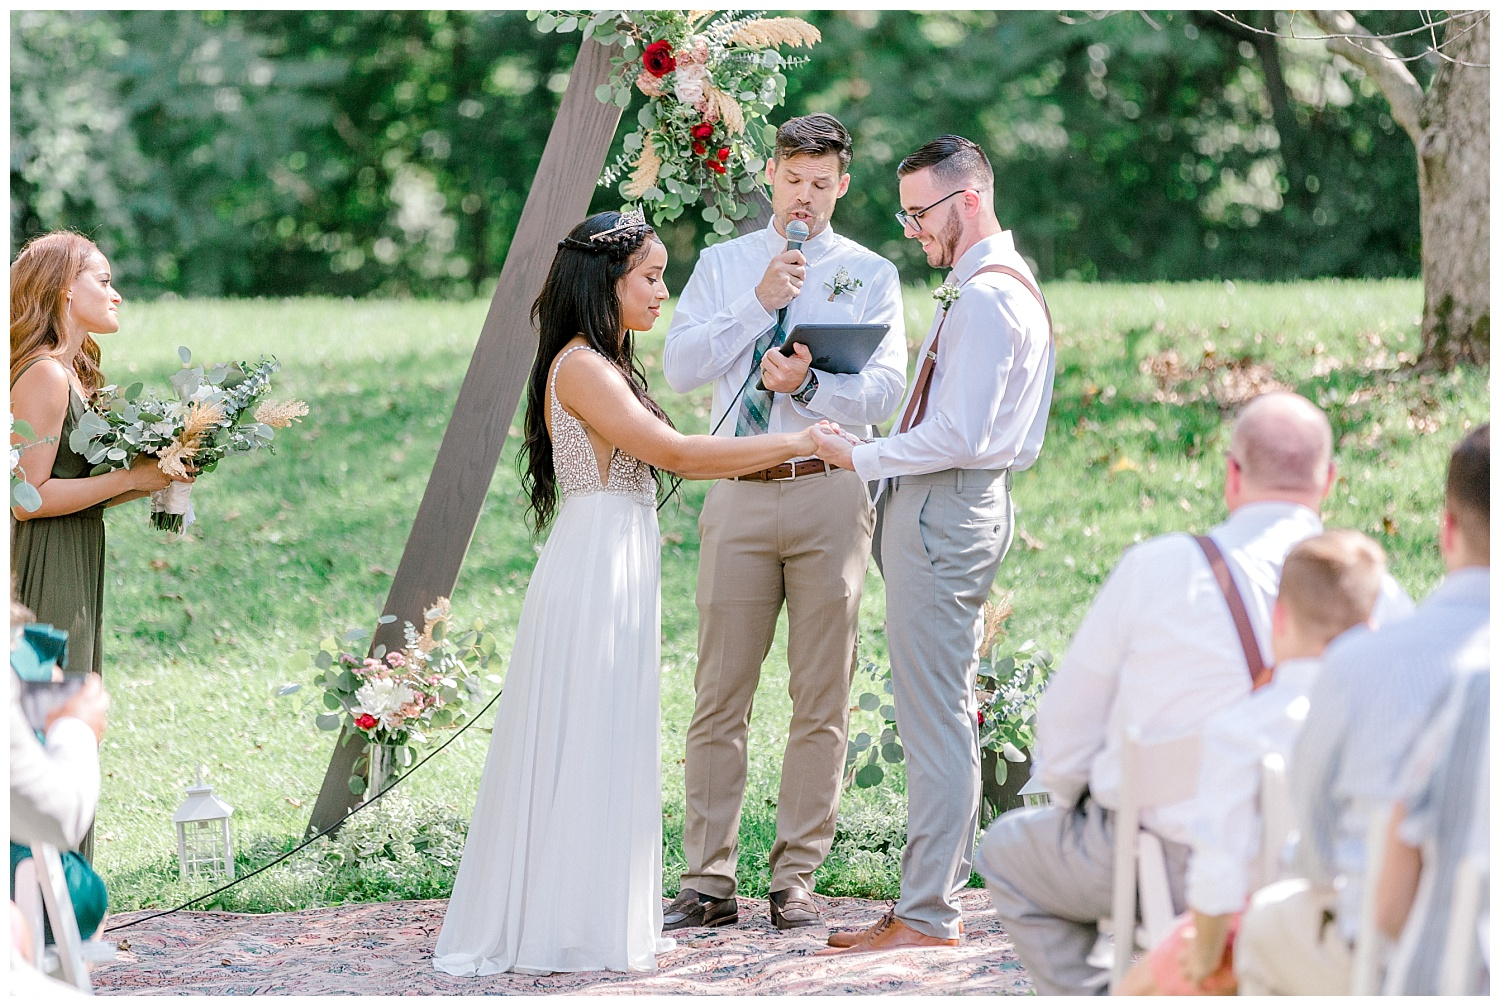 Olive green and white rustic barn wedding at burnside plantation in bethlehem pennsylvania by PA based destination wedding and lifestyle photographer Lytle photography (43).jpg